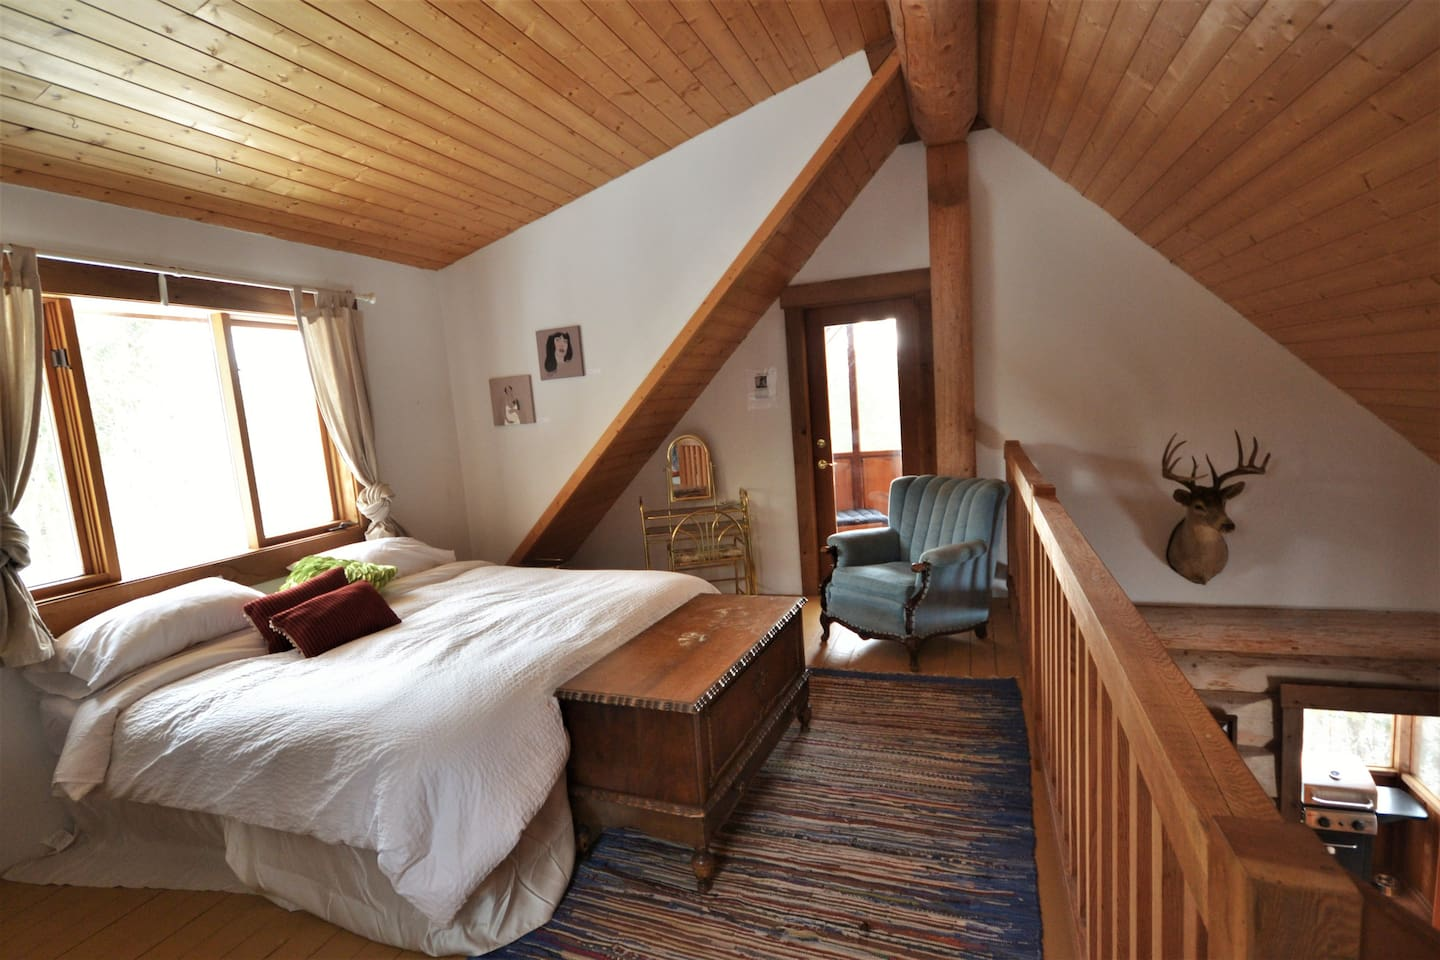 The master bedroom upstairs has a king sized bed.